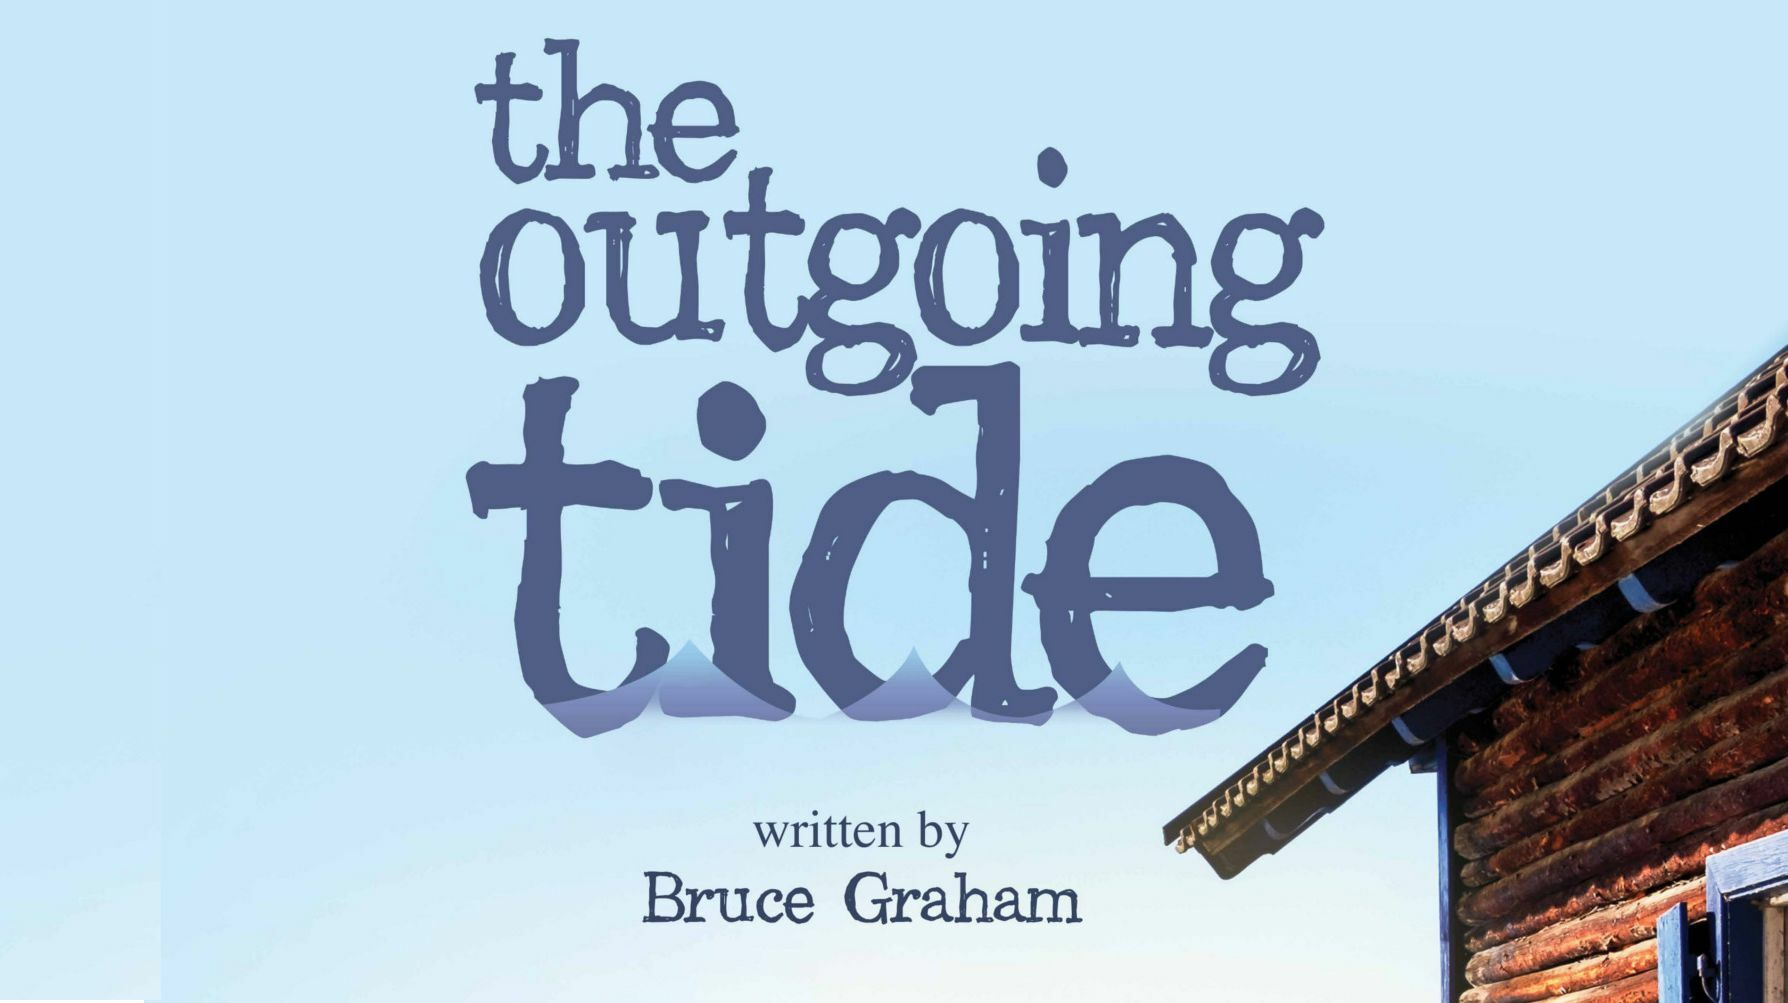 The Outgoing Tide